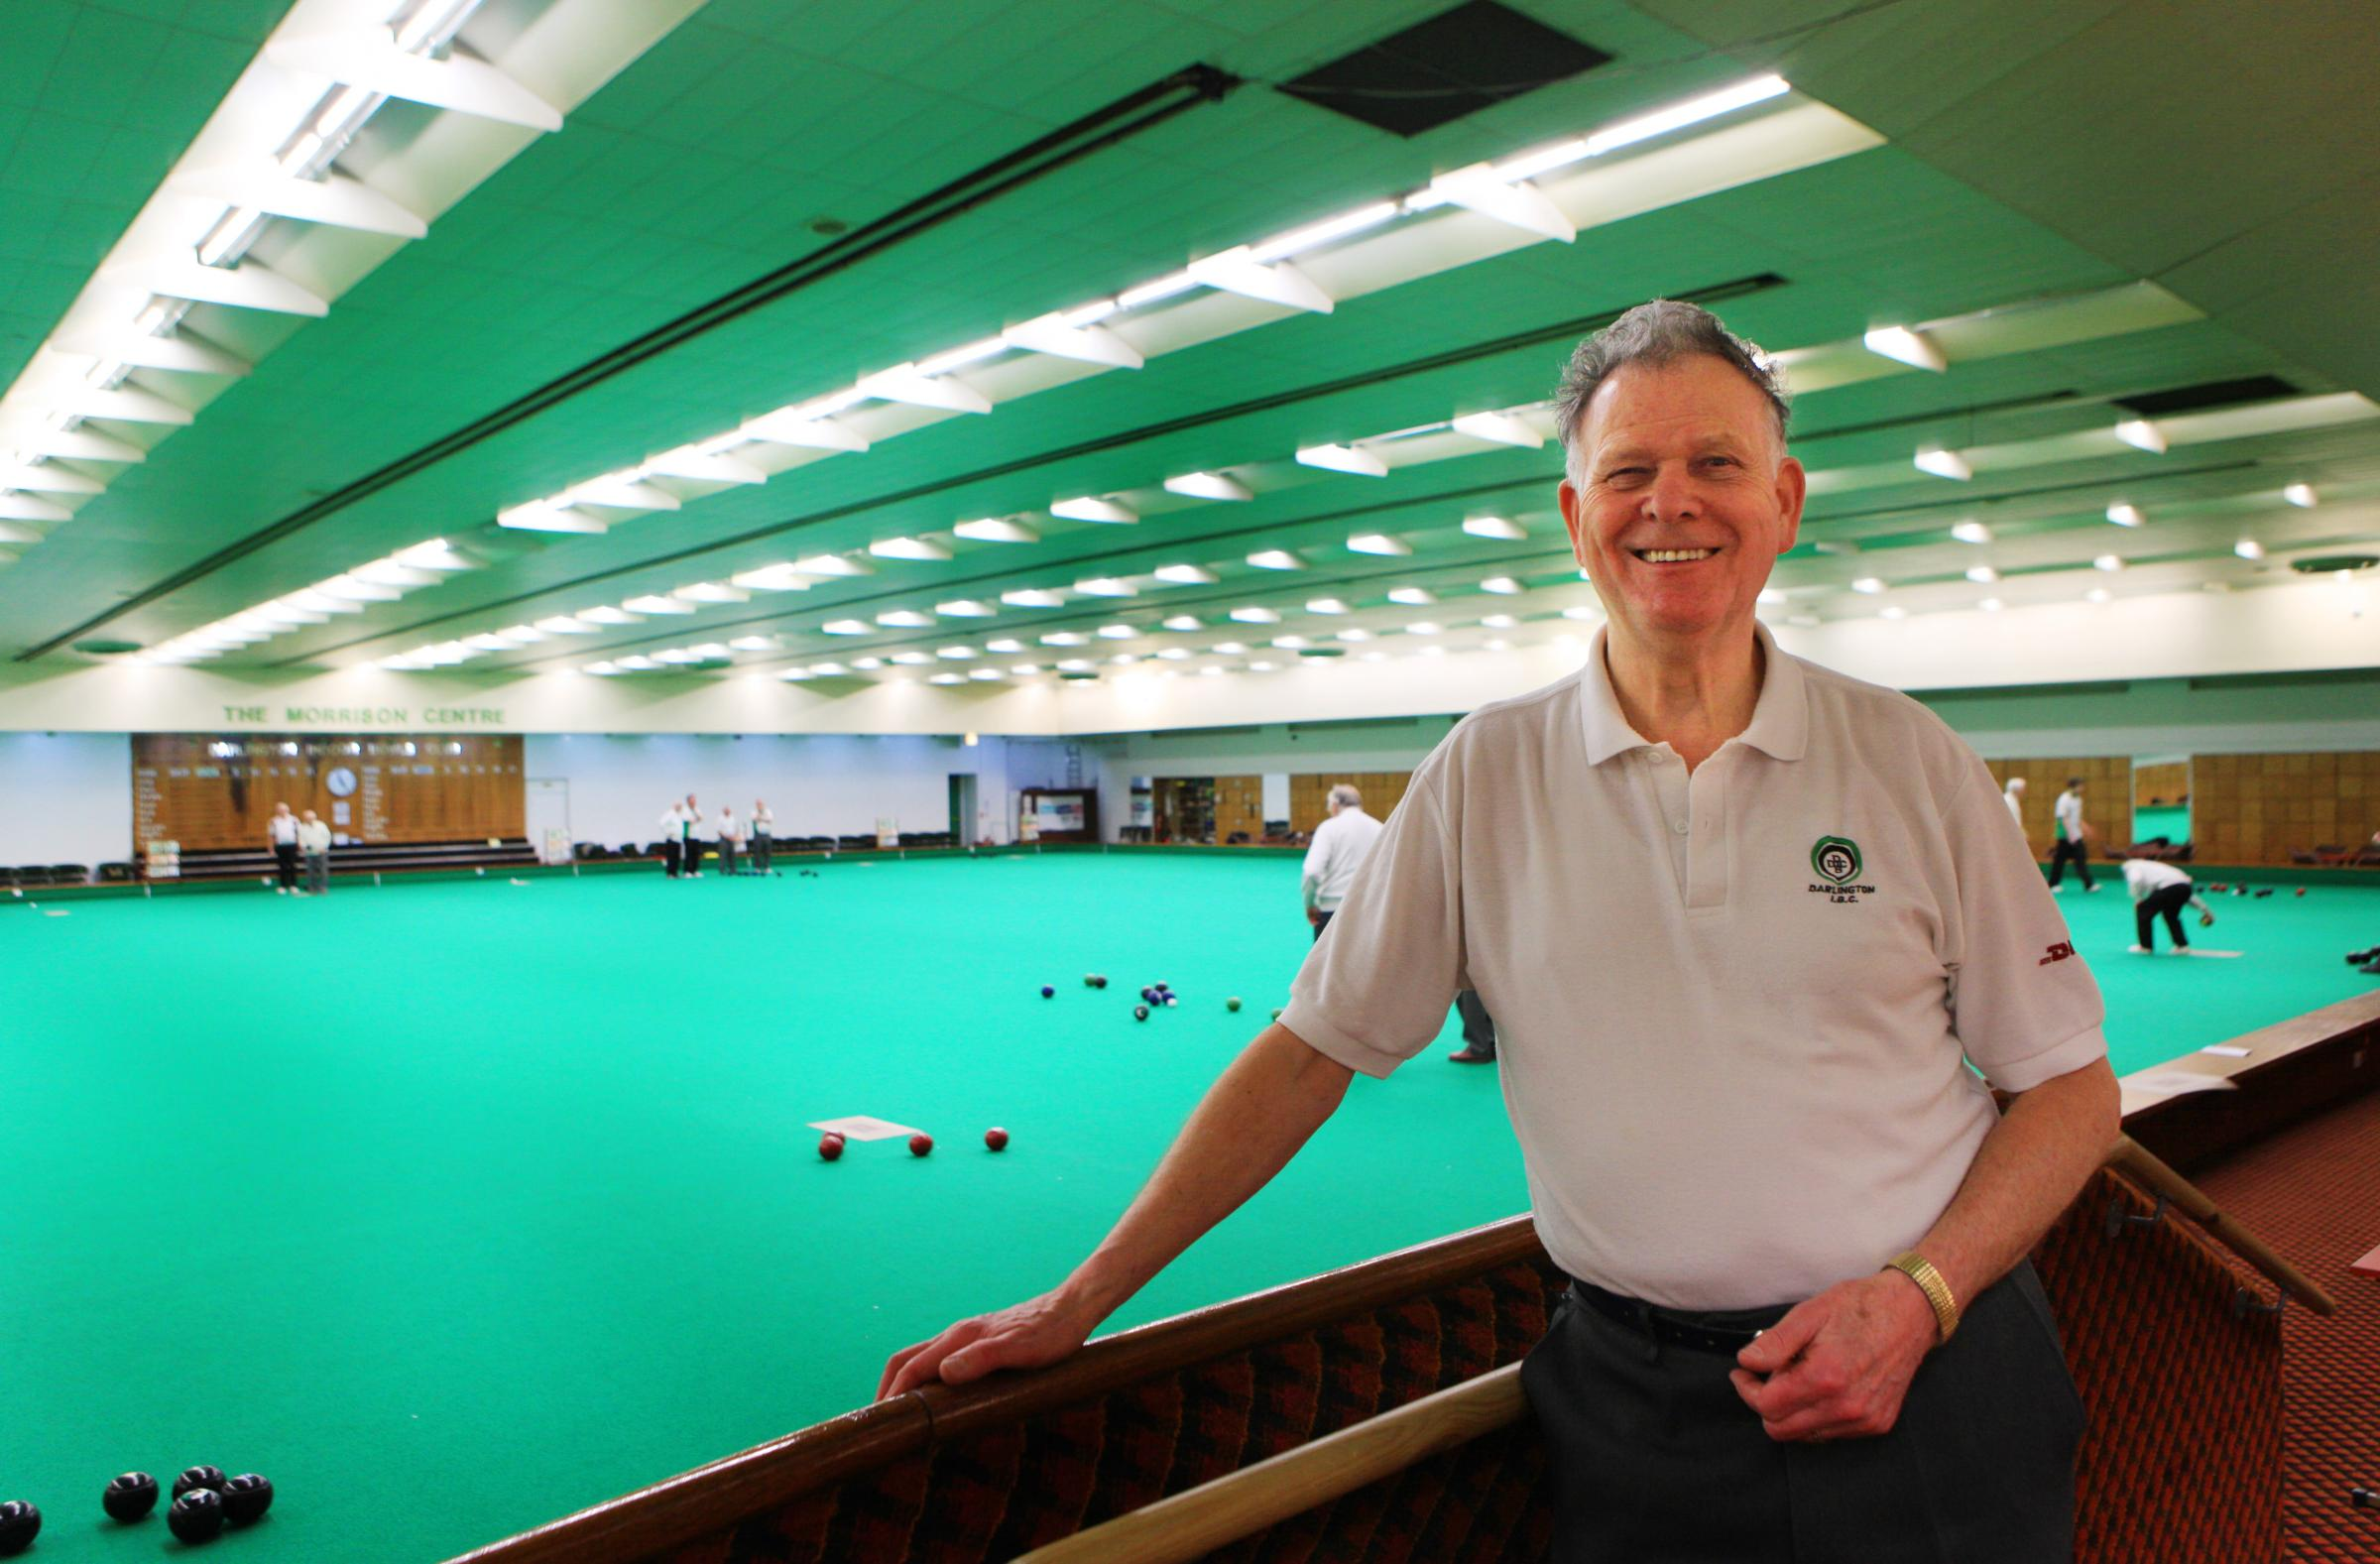 FINALS JOY: Graham Peacock, of Darlington Indoor Bowls Club, which has been chosen to host a national finals